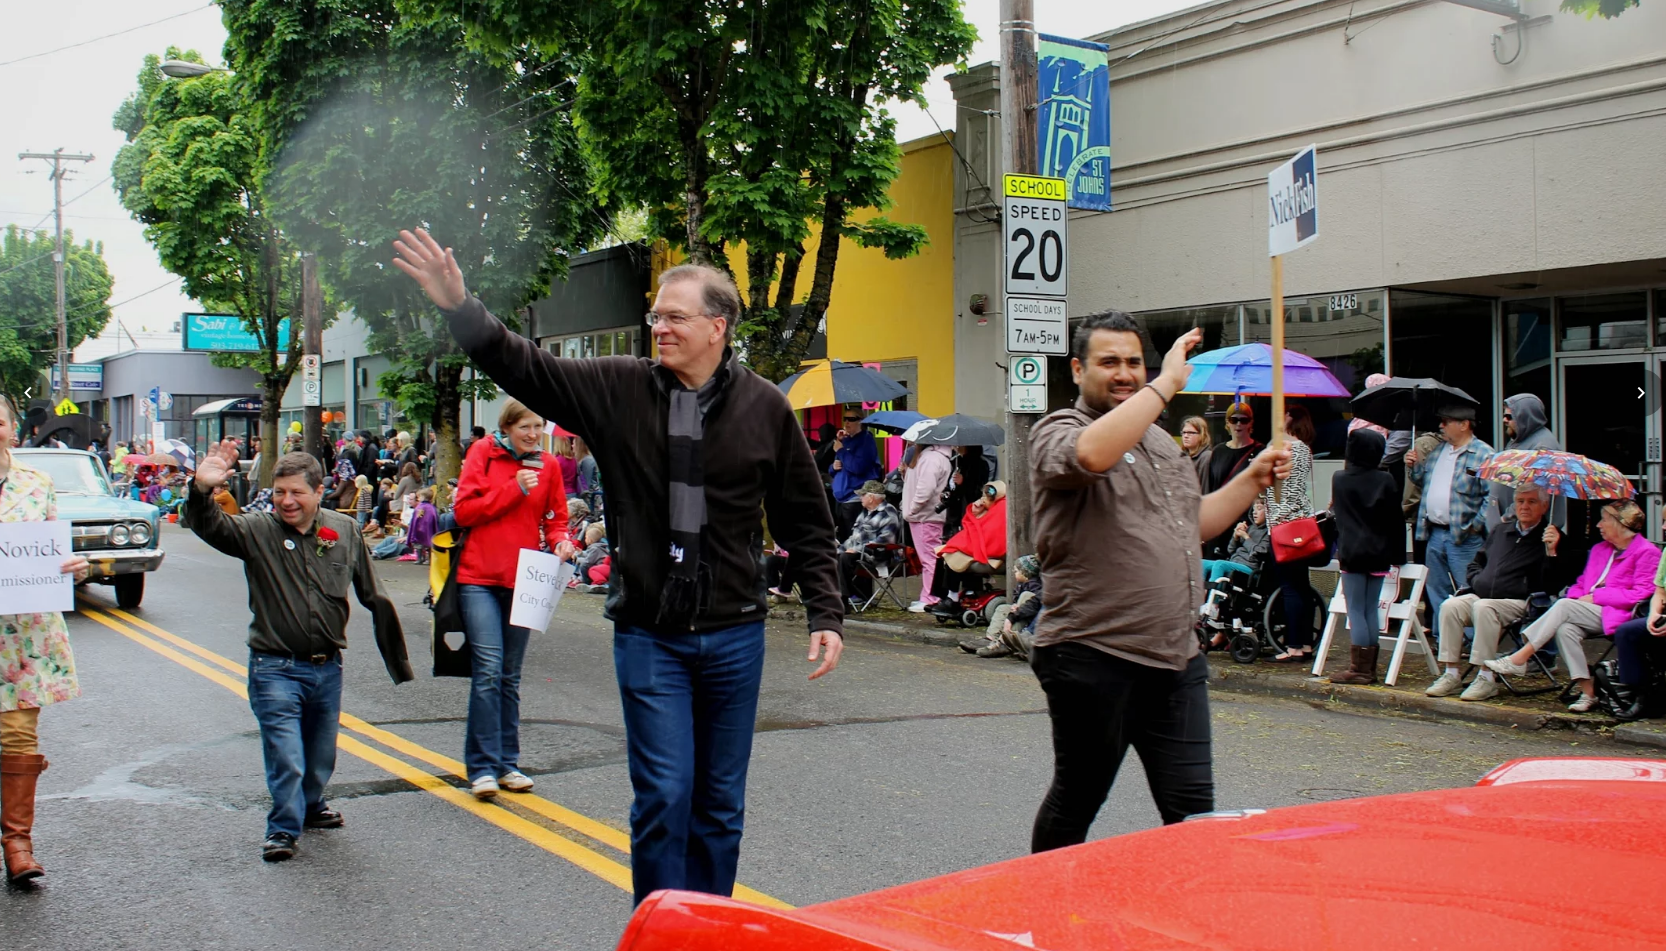 City Commissioner Nick Fish (center left) in the St. Johns Parade. (Courtesy of Multnomah County)